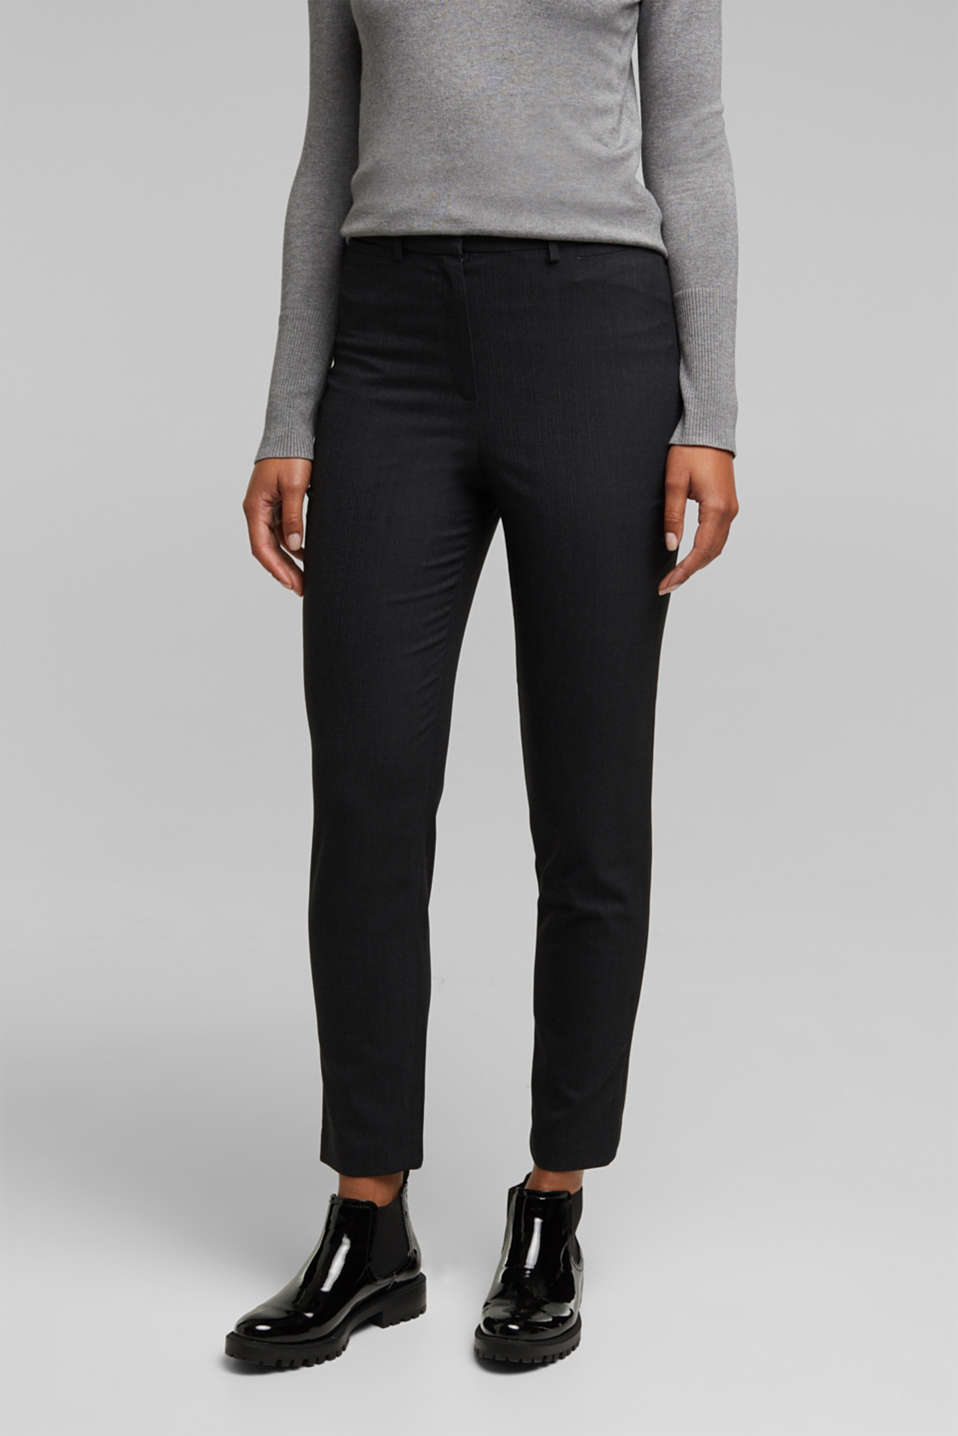 Esprit - Gerecycled: PINSTRIPE MIX + MATCH broek